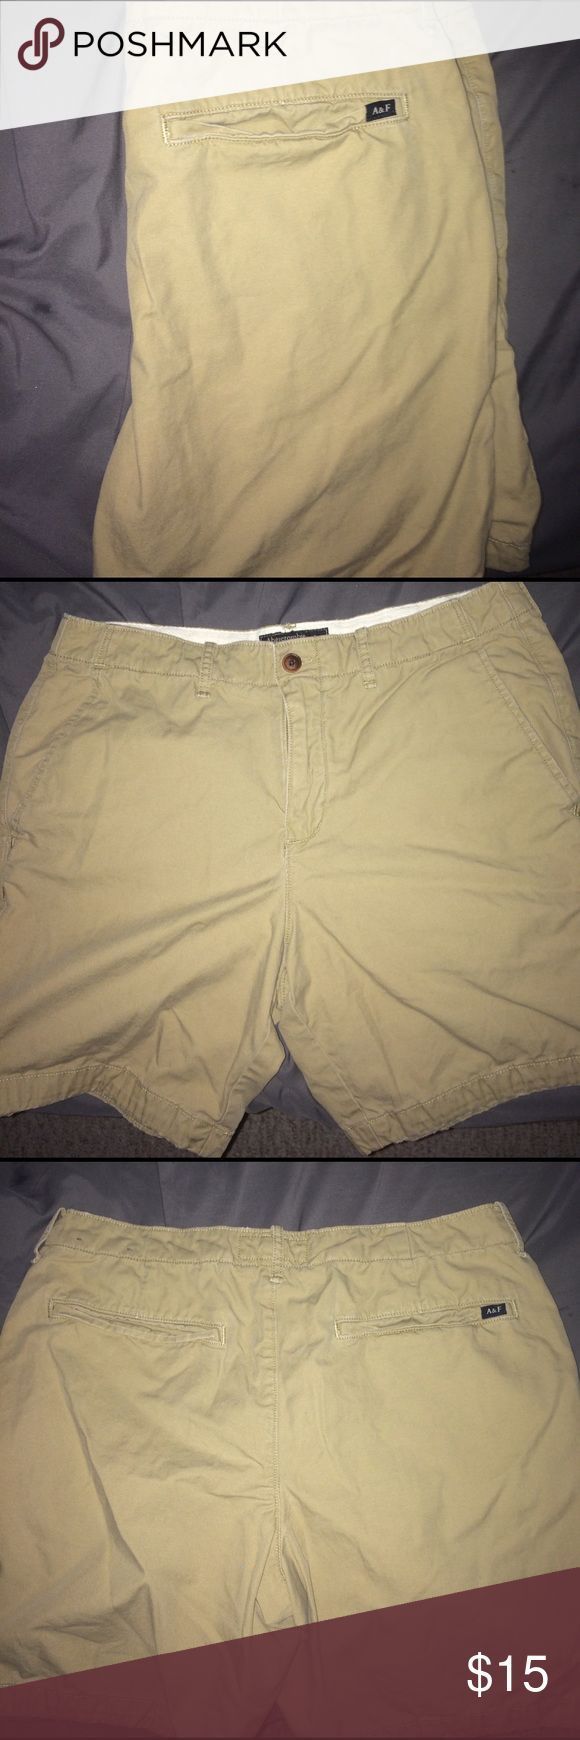 Abercrombie and Fitch Preppy Fit Shorts Pair of Abercrombie and Fitch Preppy Fit Shorts Abercrombie & Fitch Shorts Flat Front